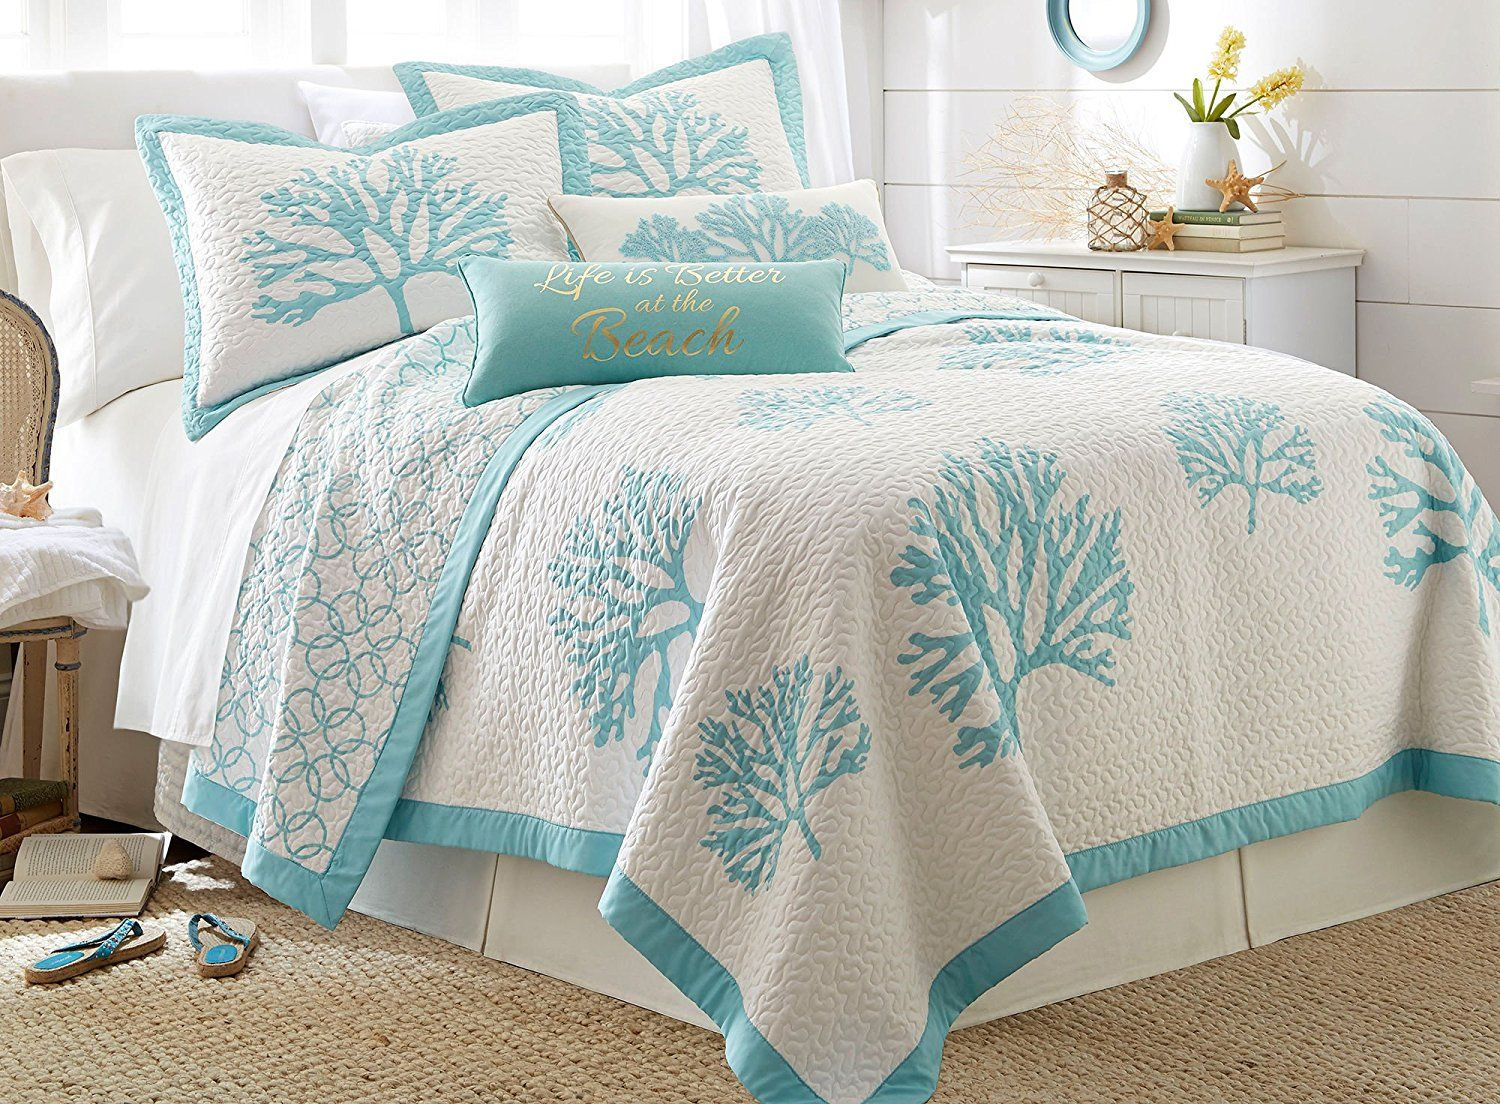 peyton comforter solid blue of target remarkable other kind colored nursery one bed glamorous sets full king set tiffany the plain bedding twin baby best spillo sheets ideas has caves xl